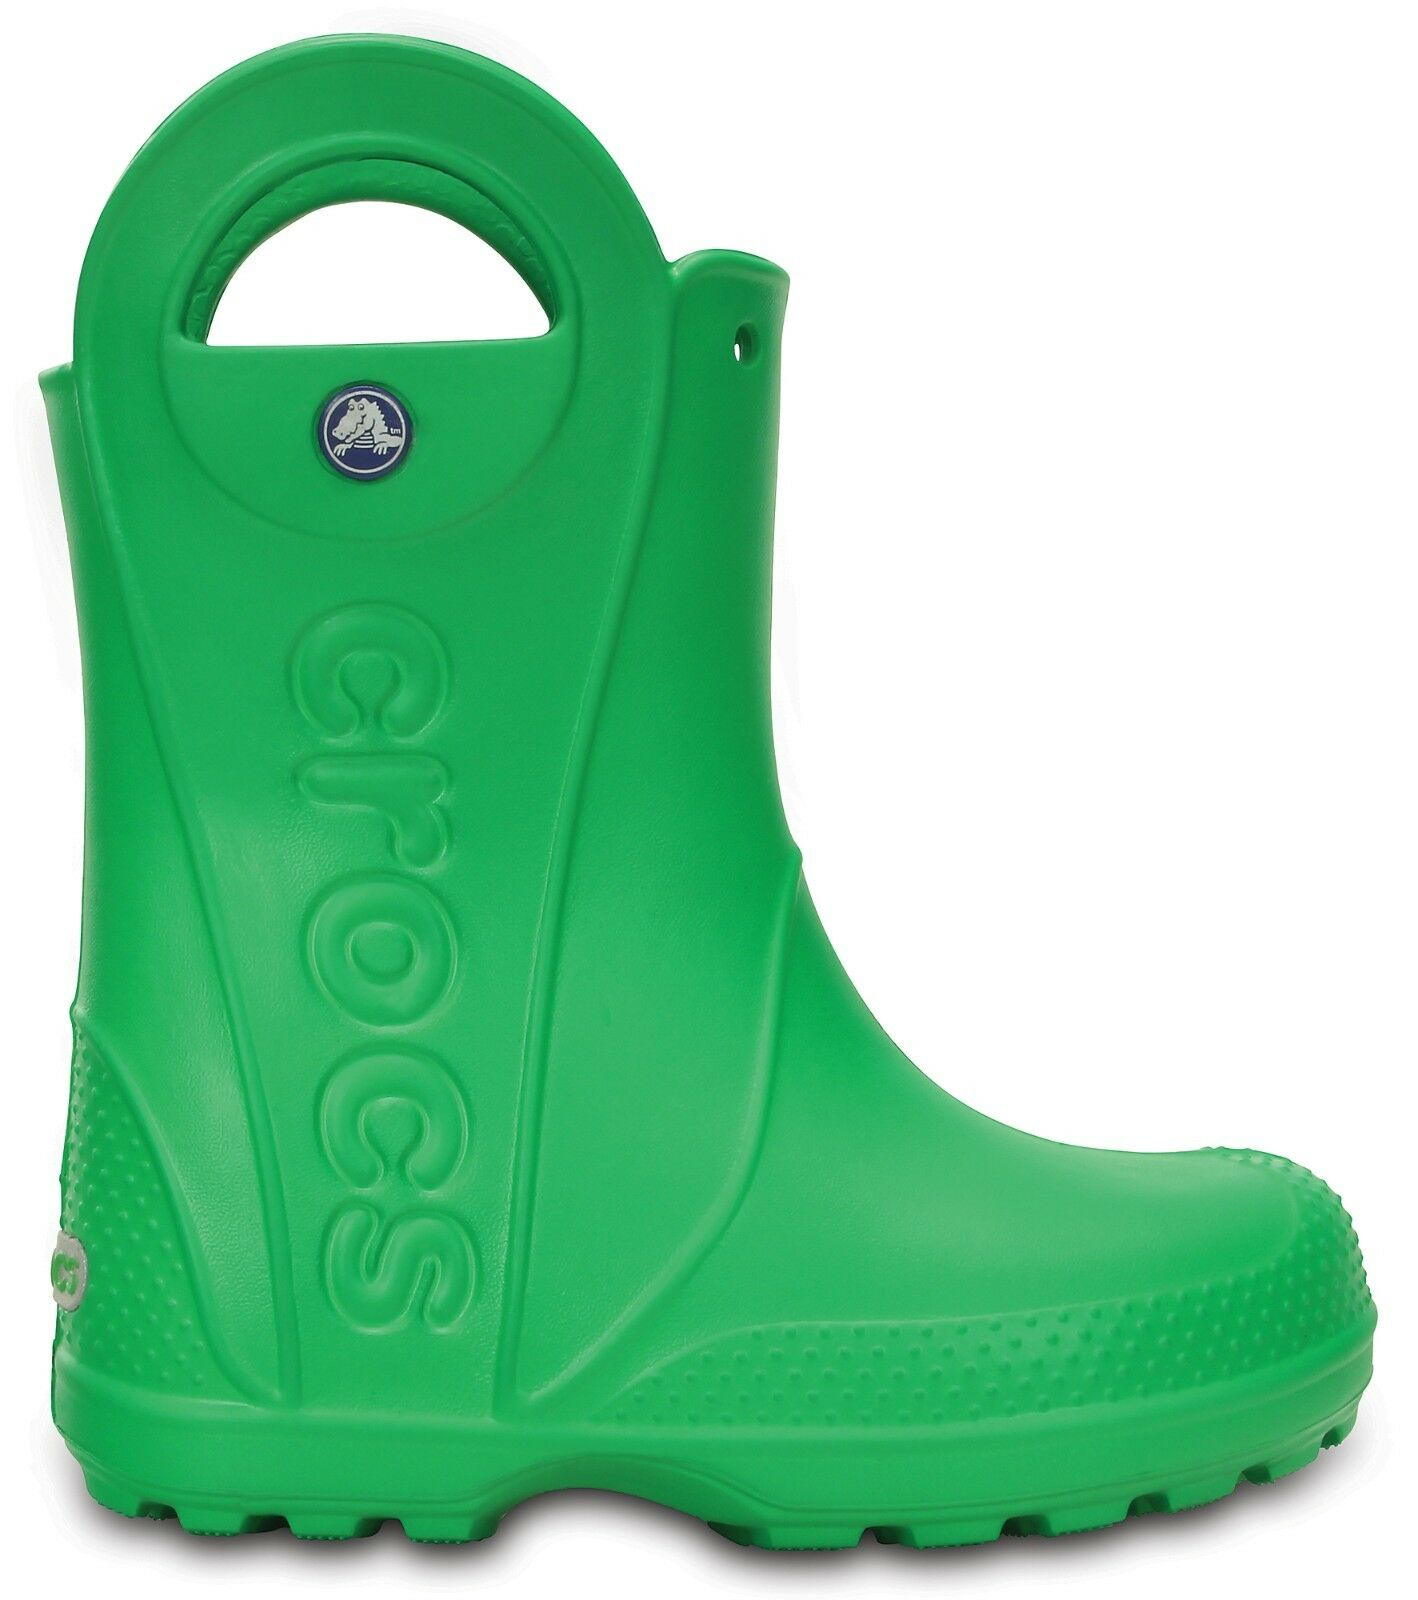 9b64c5791f746b Crocs Kids Handle It Rain Roomy Fit BOOTS Wellies in Wide Range of Colours 12803  Grass Green 12803 3e8 Child 12 887350426052